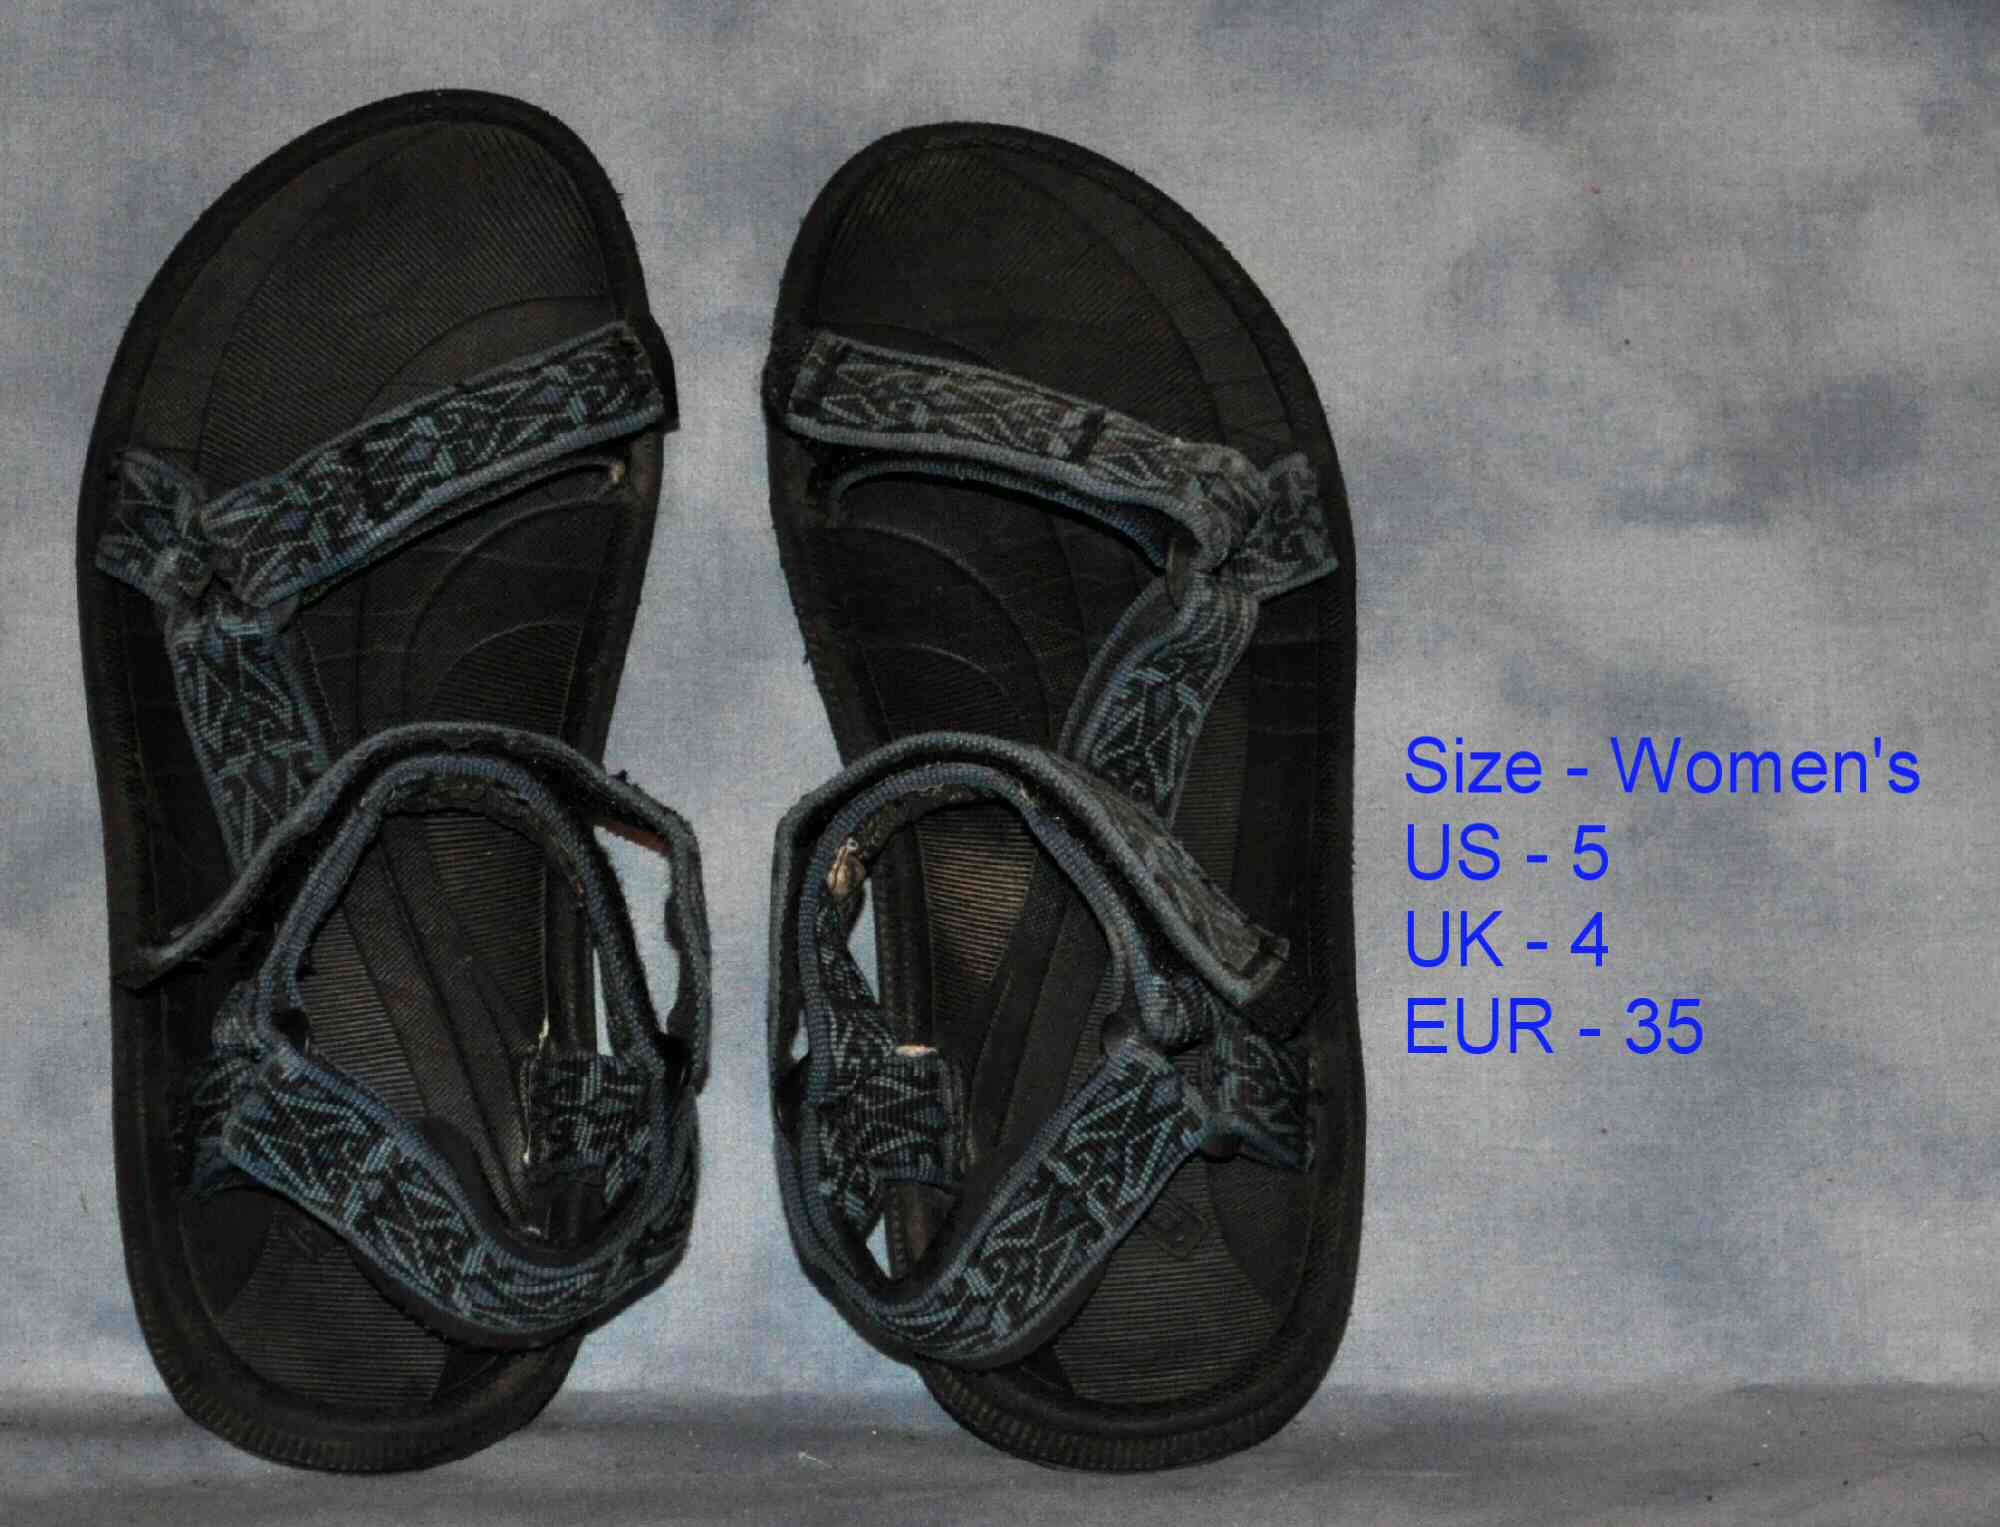 Details about Womens size 5 TEVA Water Sandals water shoes refurbished